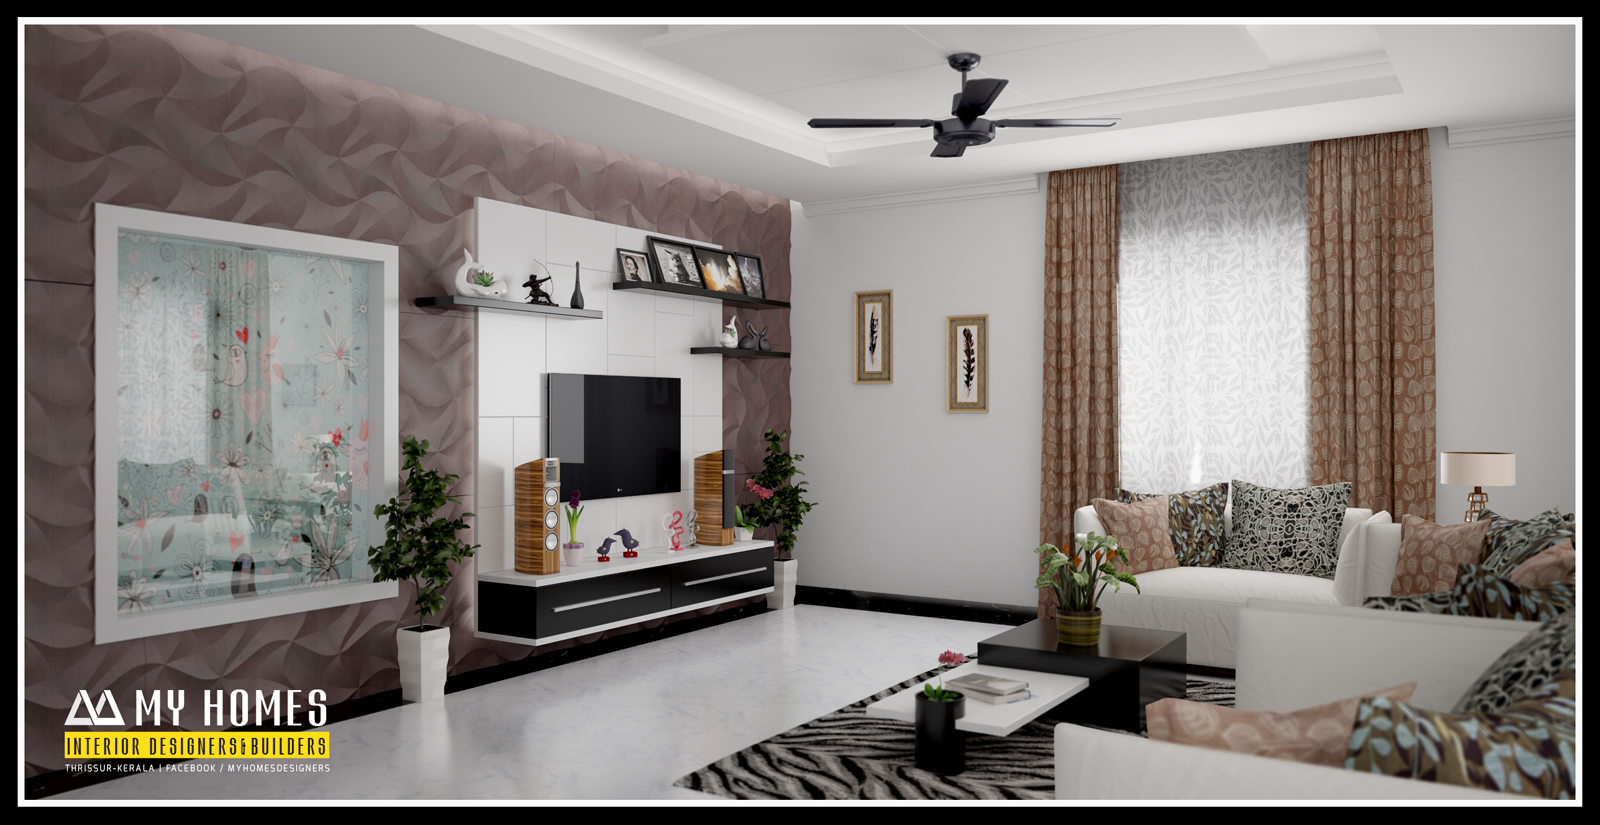 Budget kerala home designers low budget house construction Home interior design etobicoke